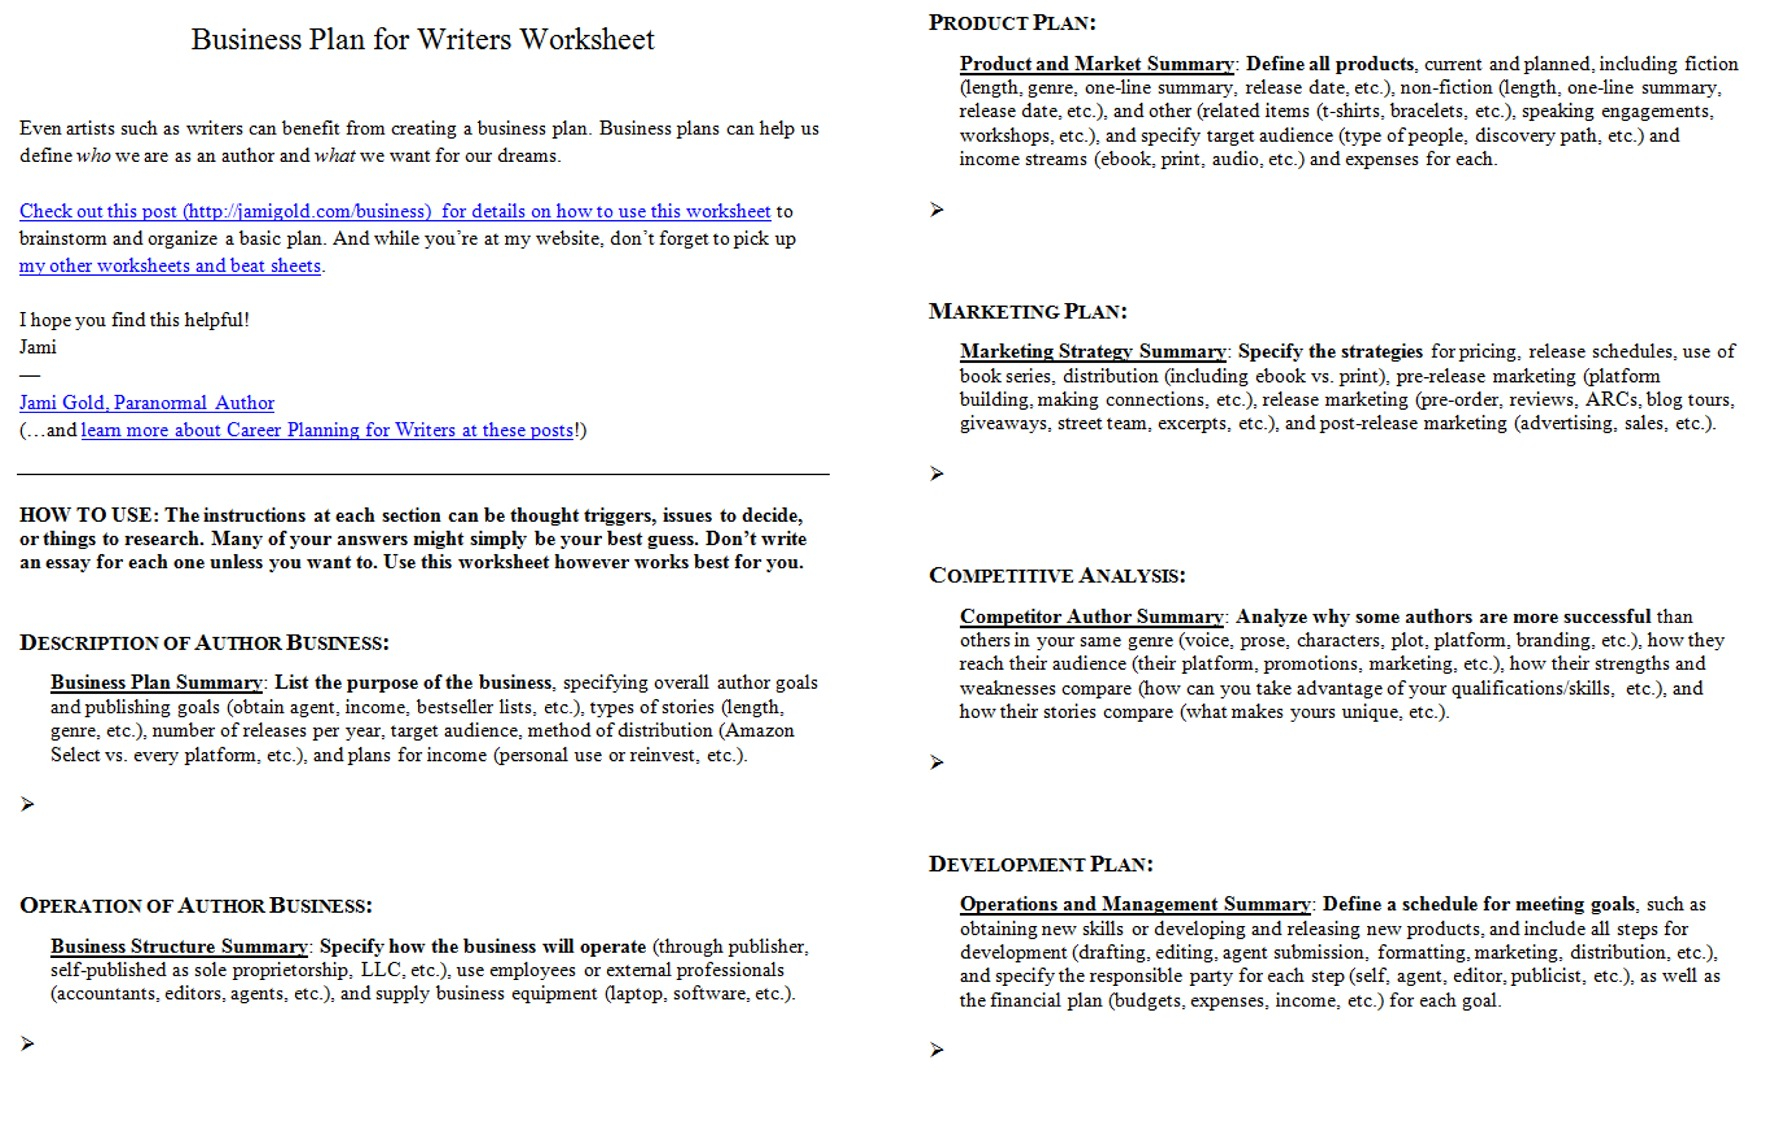 Aldiablosus  Picturesque Worksheets For Writers  Jami Gold Paranormal Author With Licious Screen Shot Of Both Pages Of The Business Plan For Writers Worksheet With Amazing Pie Graph Worksheets Also Trace Name Worksheets In Addition Step  Worksheet And Decimal Worksheets Th Grade As Well As Common Core Worksheets Fractions Additionally Dimensional Analysis Problems Worksheet From Jamigoldcom With Aldiablosus  Licious Worksheets For Writers  Jami Gold Paranormal Author With Amazing Screen Shot Of Both Pages Of The Business Plan For Writers Worksheet And Picturesque Pie Graph Worksheets Also Trace Name Worksheets In Addition Step  Worksheet From Jamigoldcom